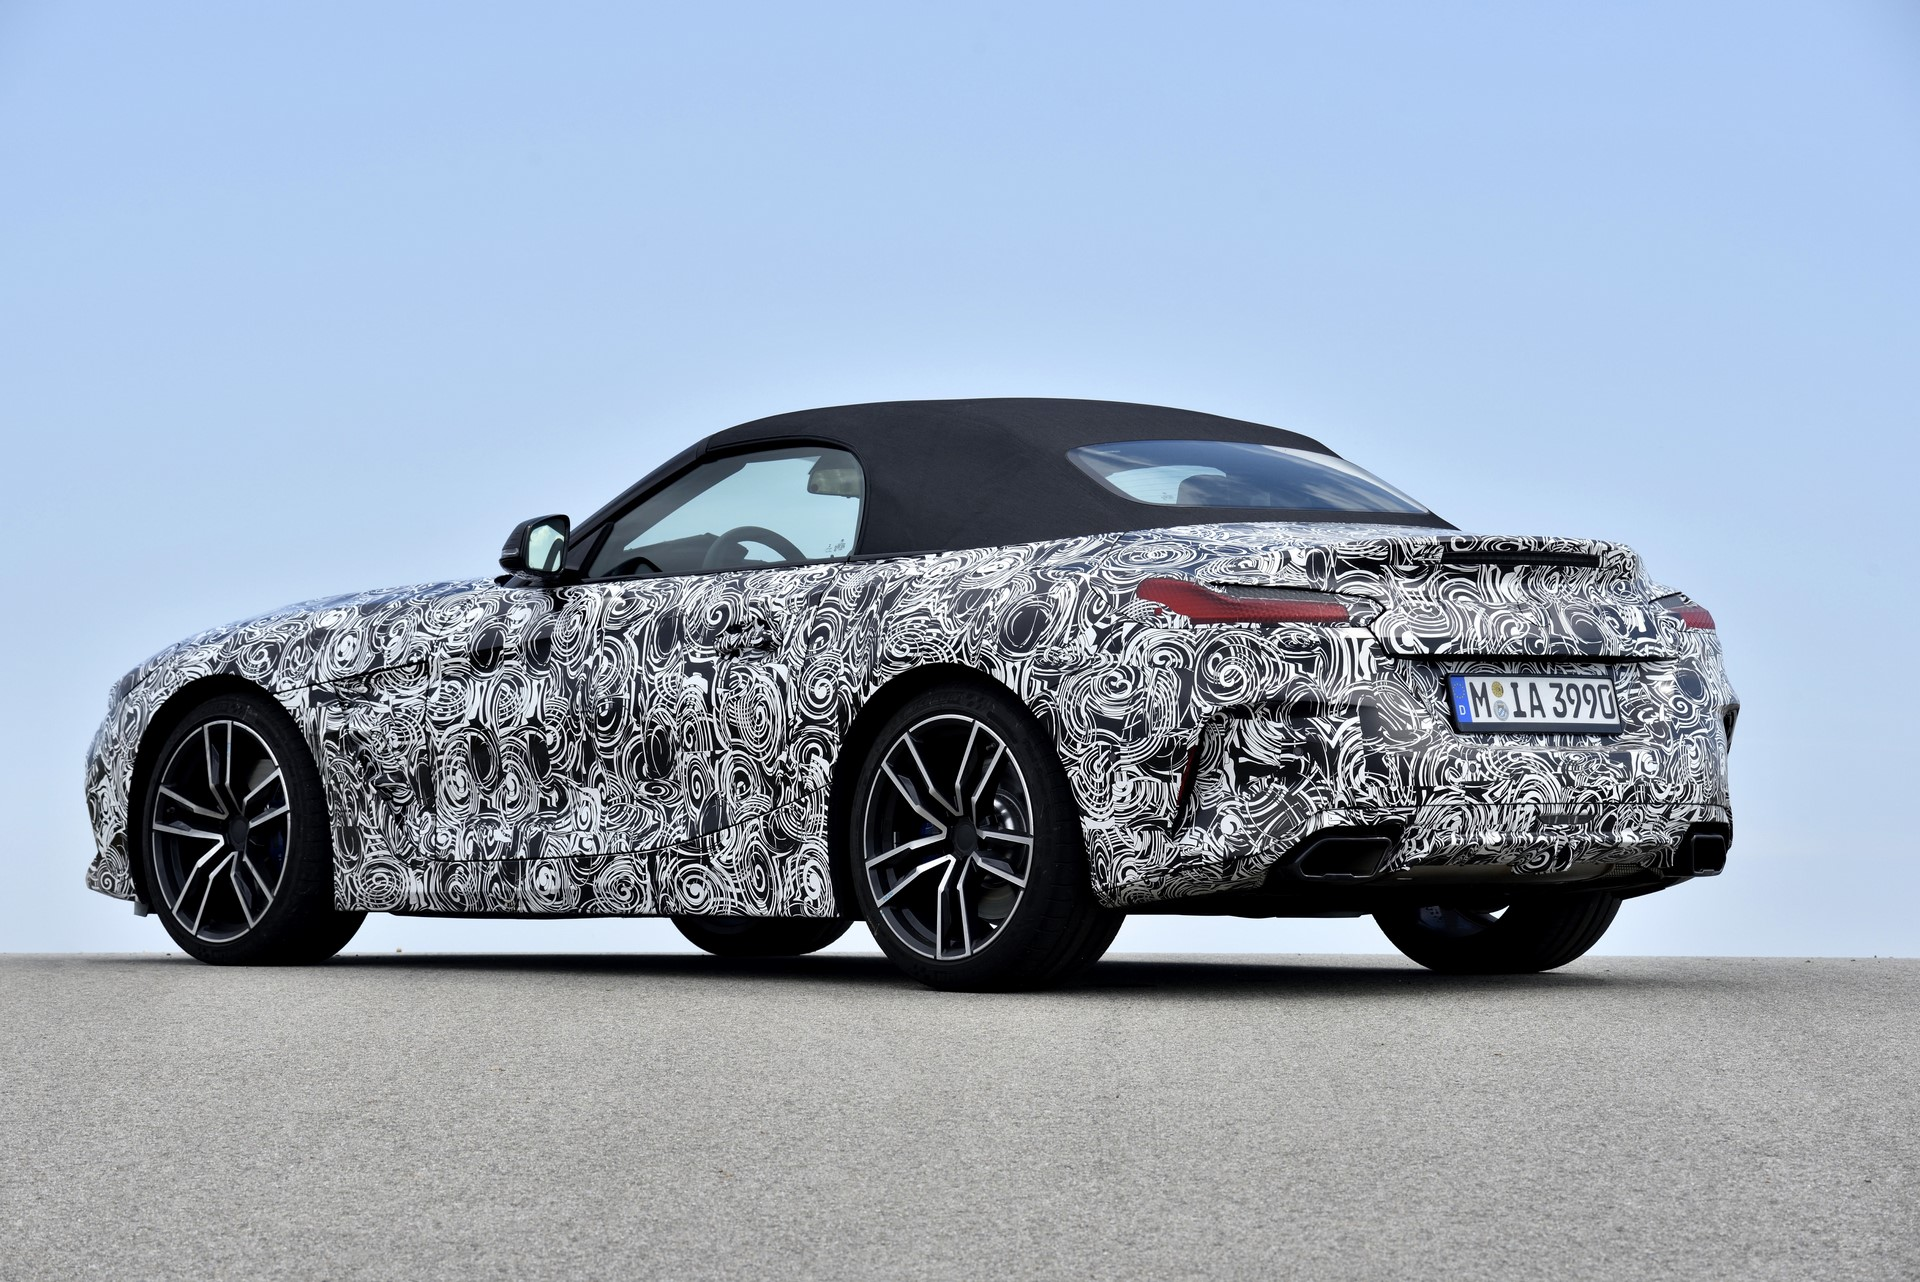 BMW Z4 M40i 2019 official spy photos (33)